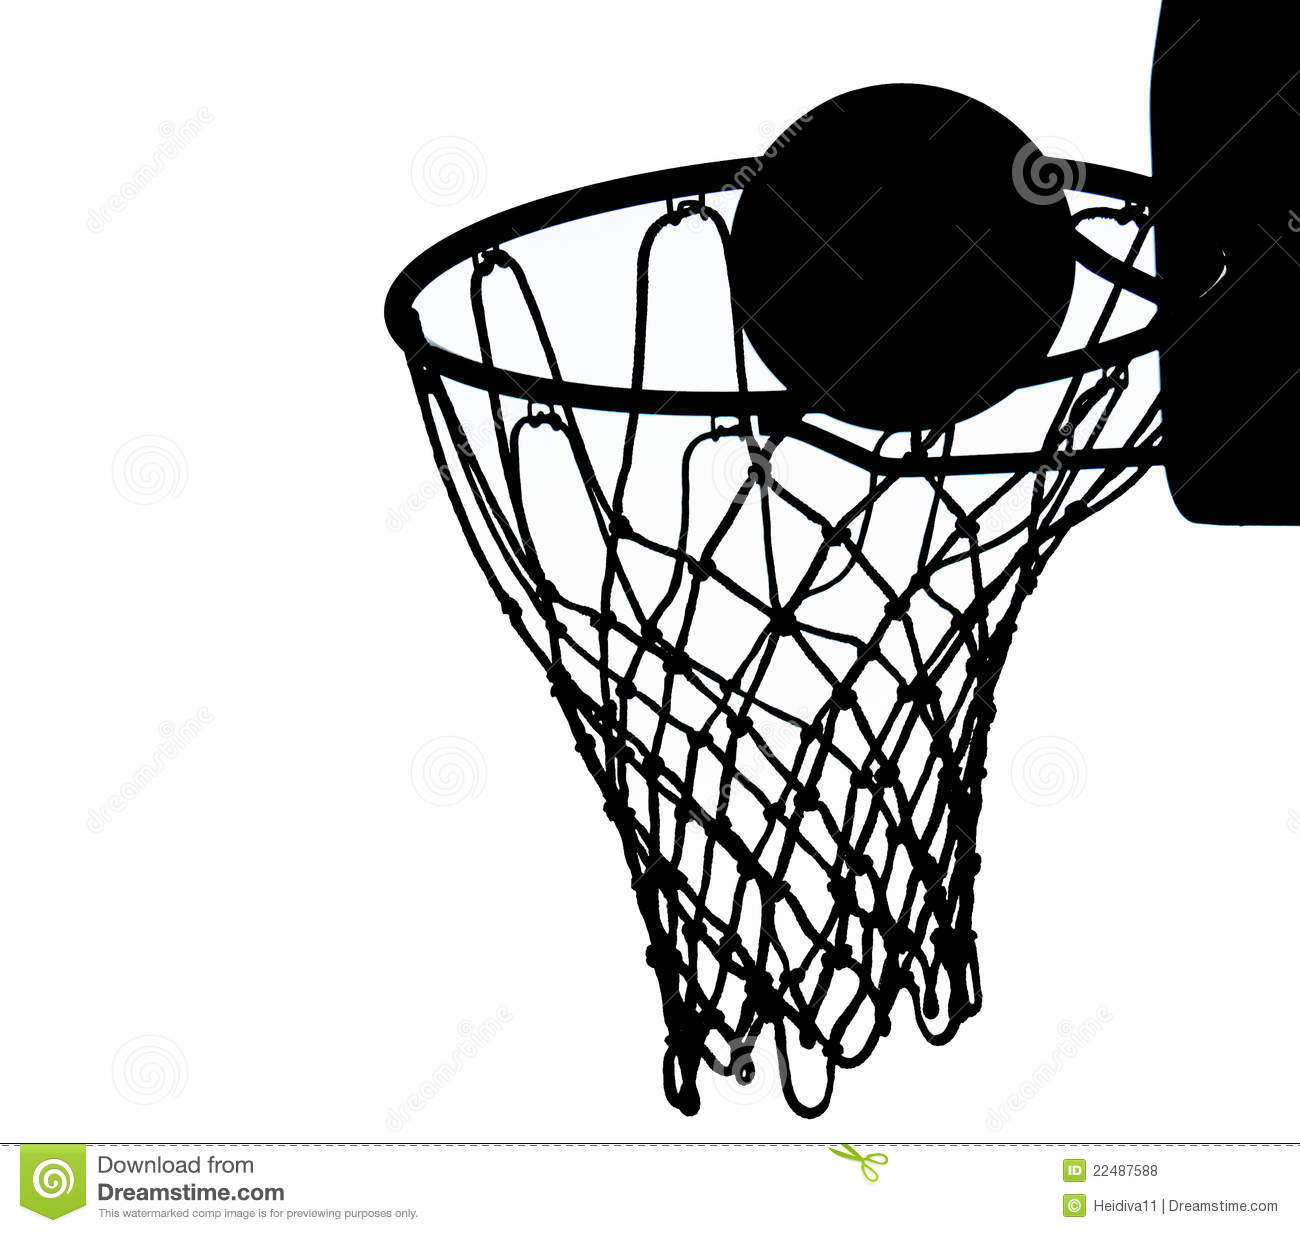 Basketball net vector art